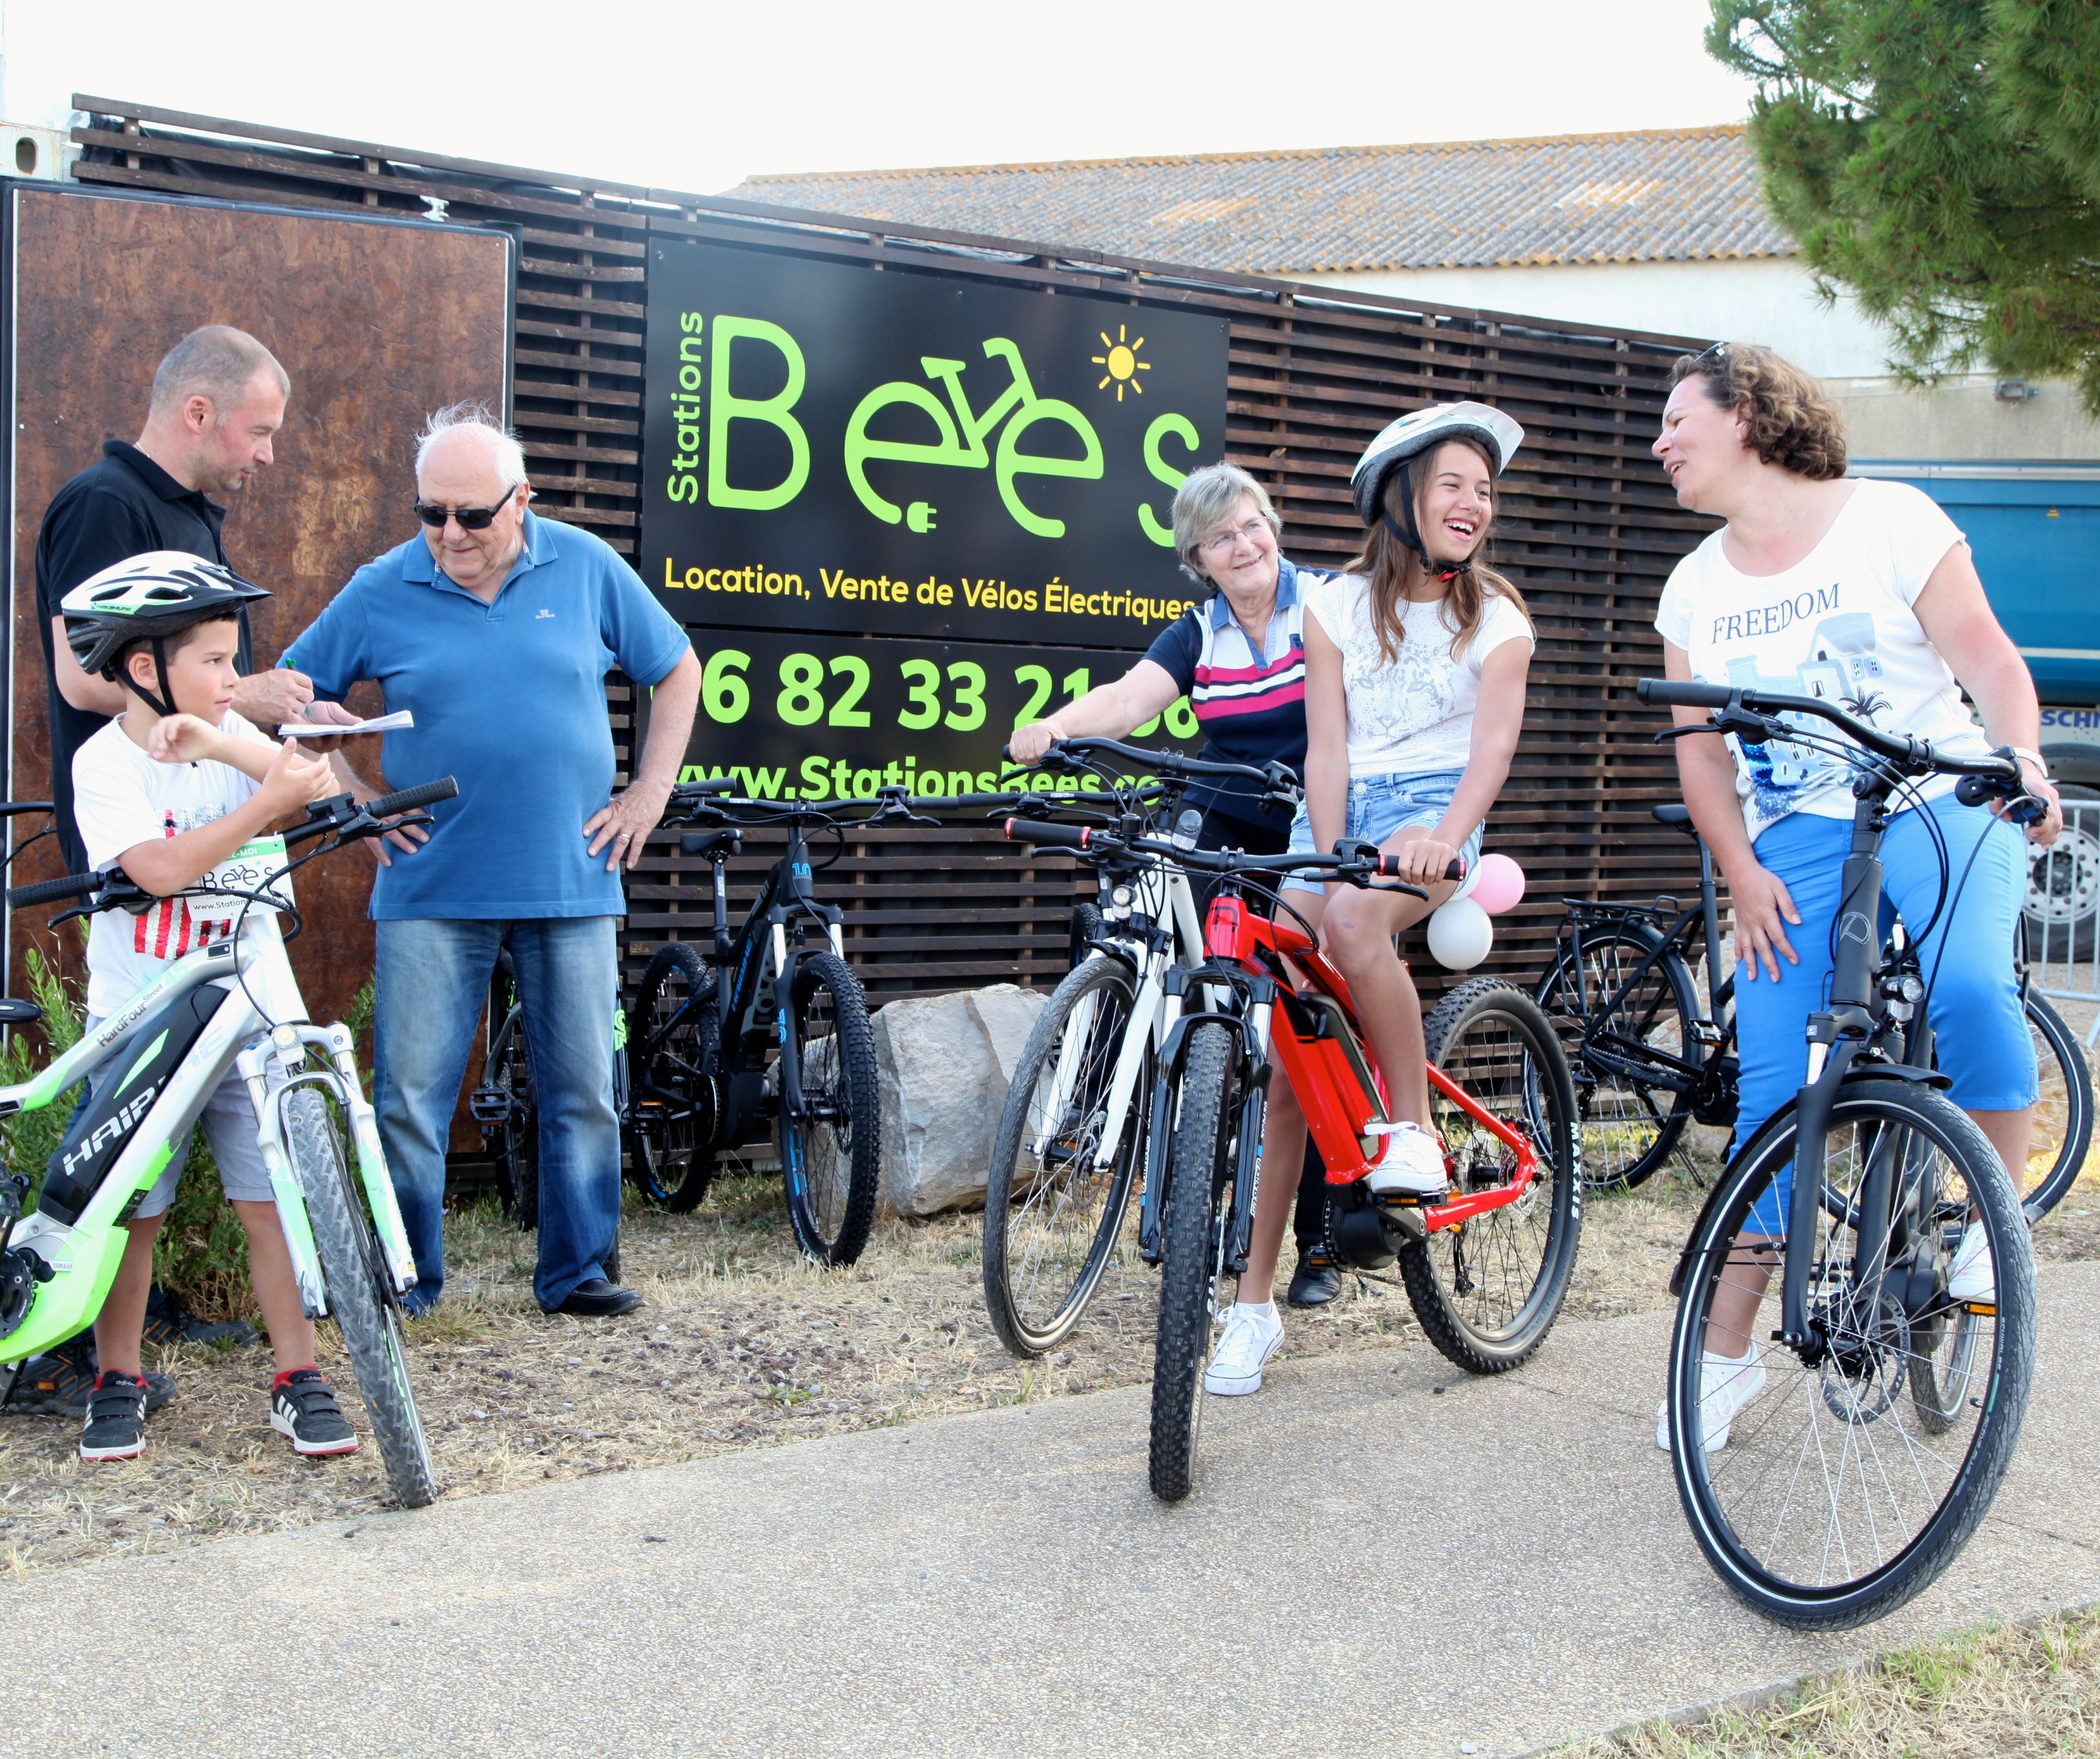 statiosn bee's pérols location vente velo electrique